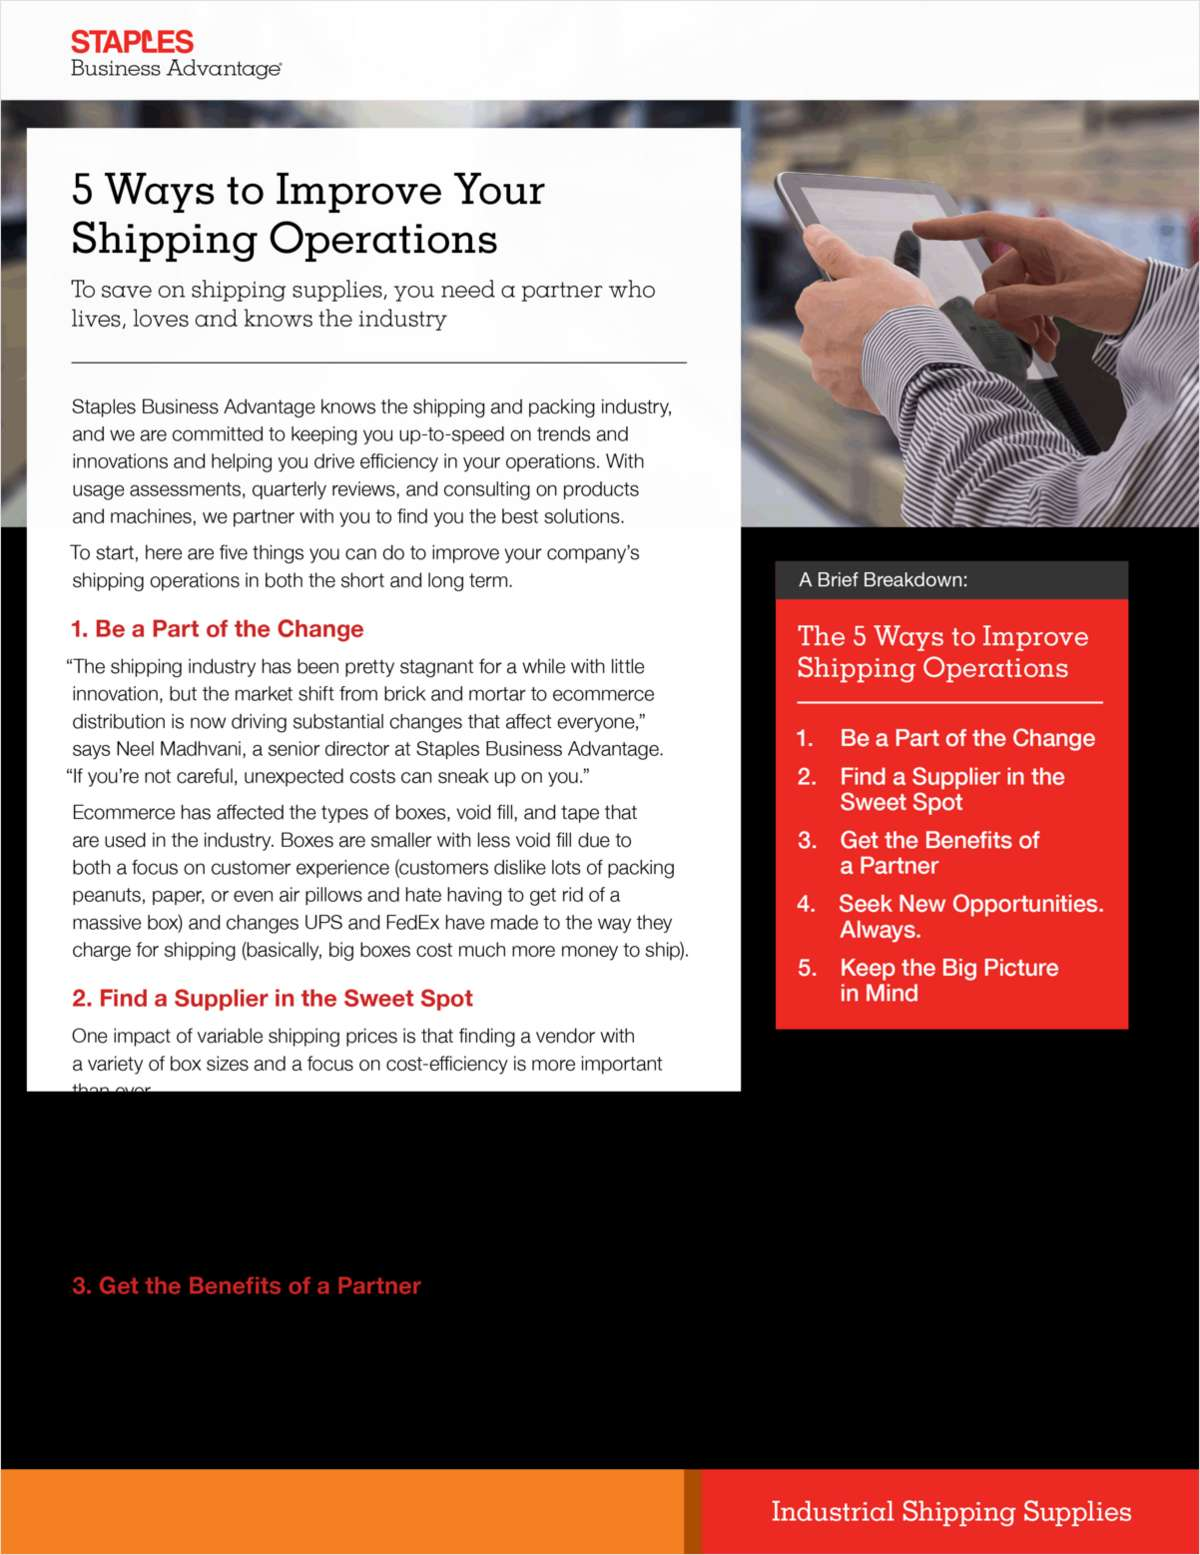 5 Steps to Better Shipping